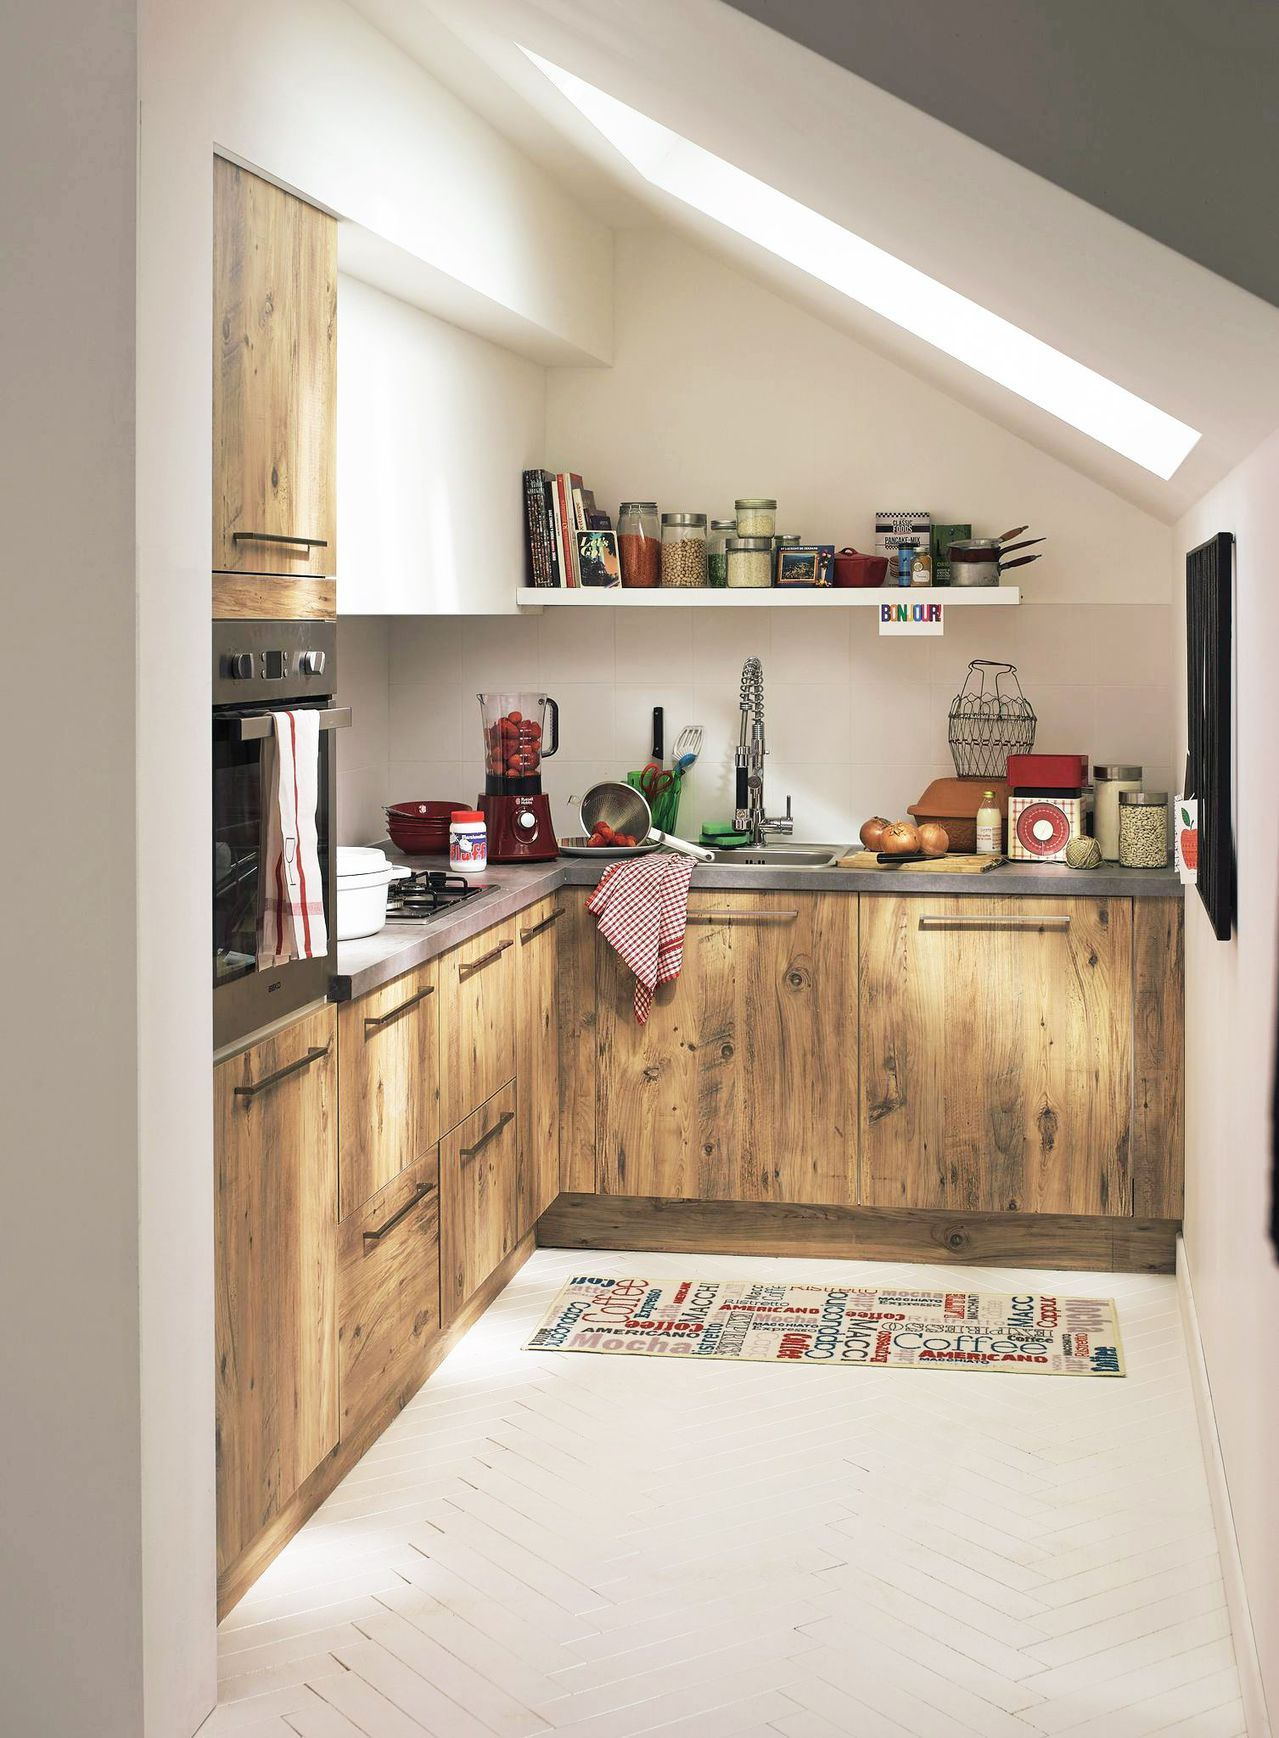 Come rinnovare una vecchia cucina | Mtv cribs, Kitchens and Kitchen redo